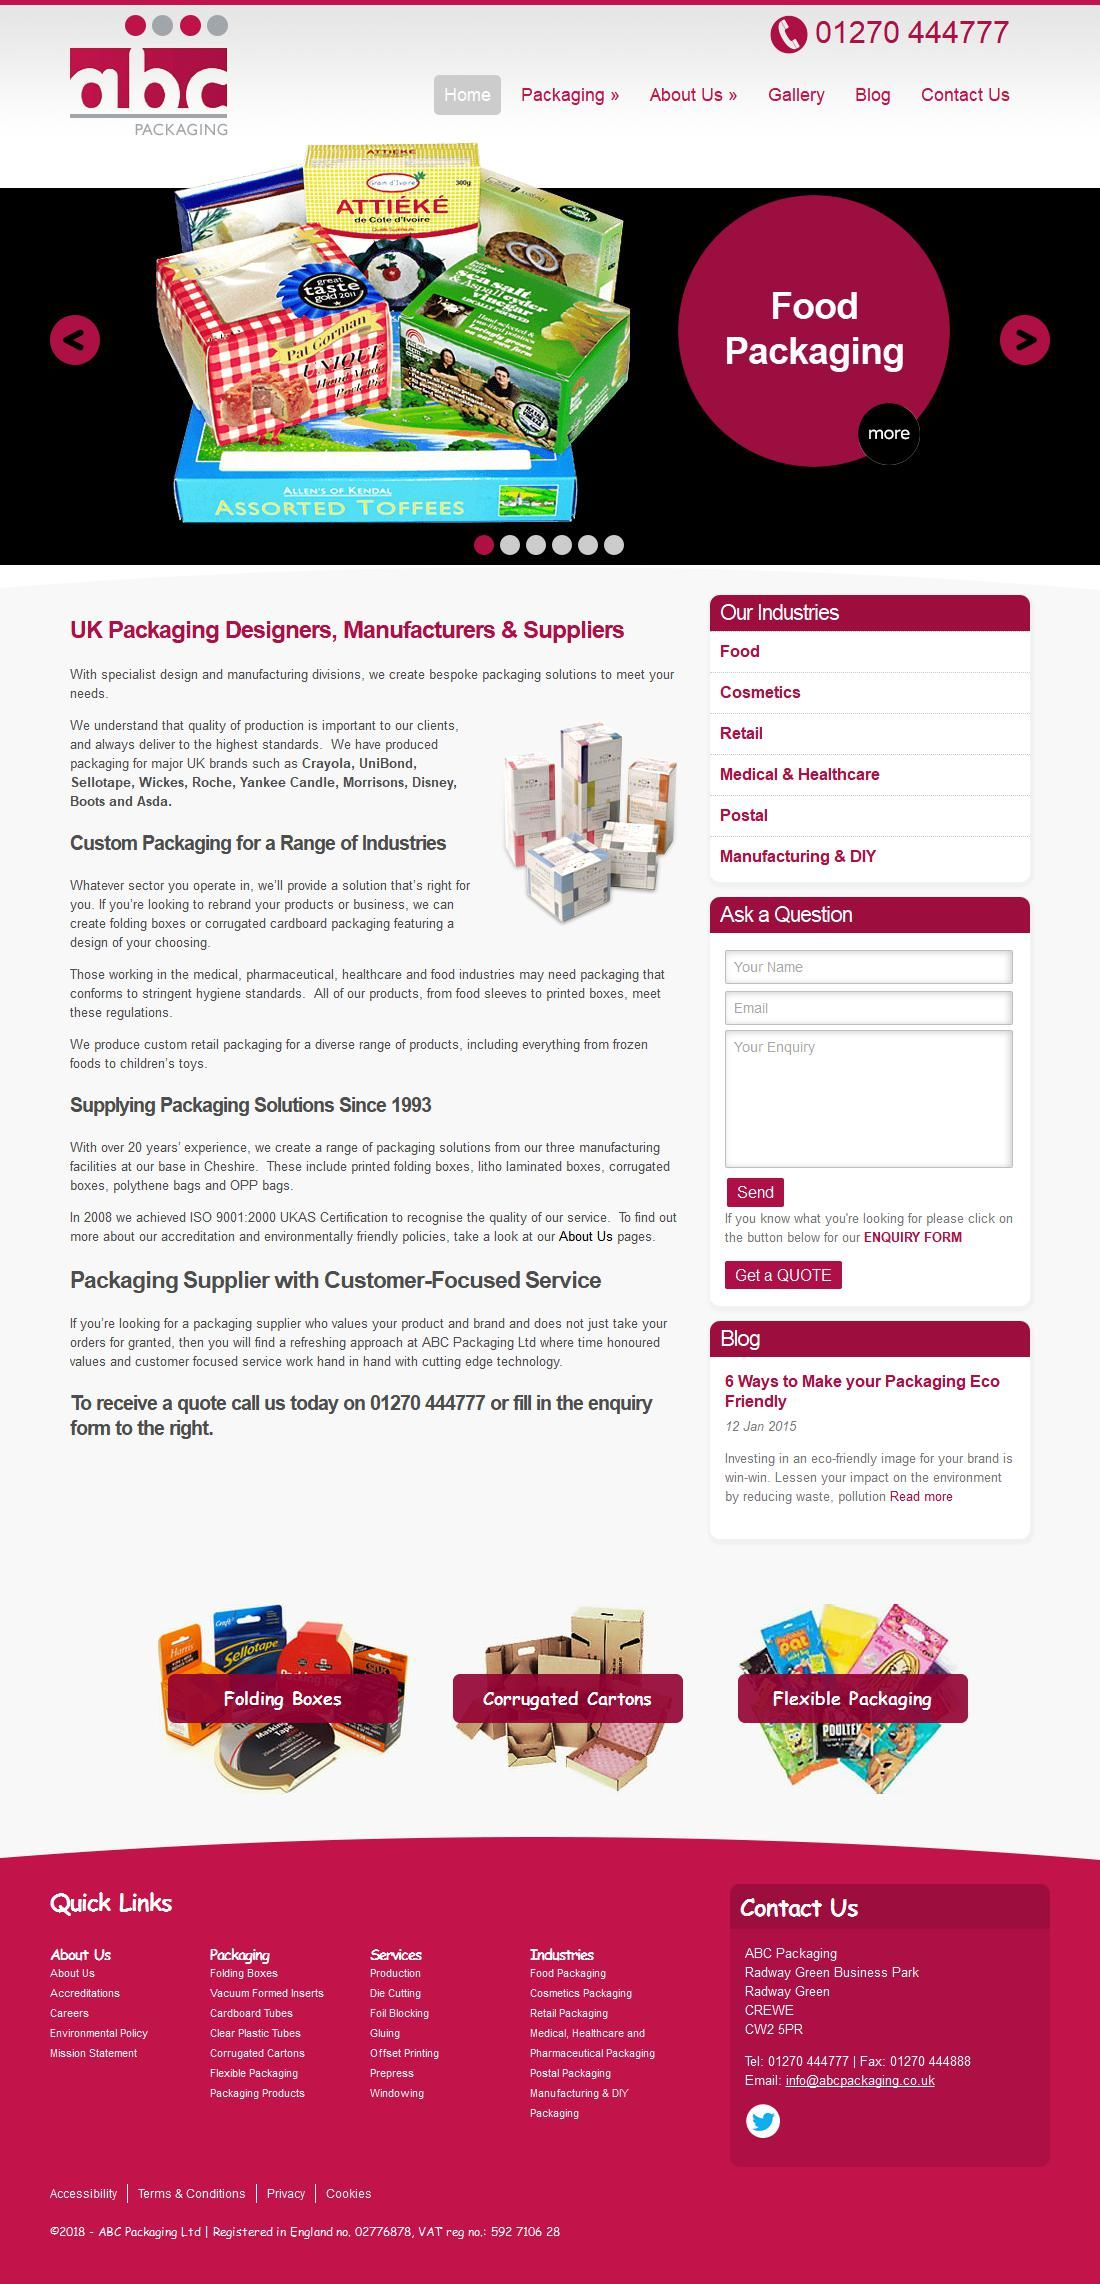 A B C Packaging Plastic & Fabric Bags Suppliers Unit 2125